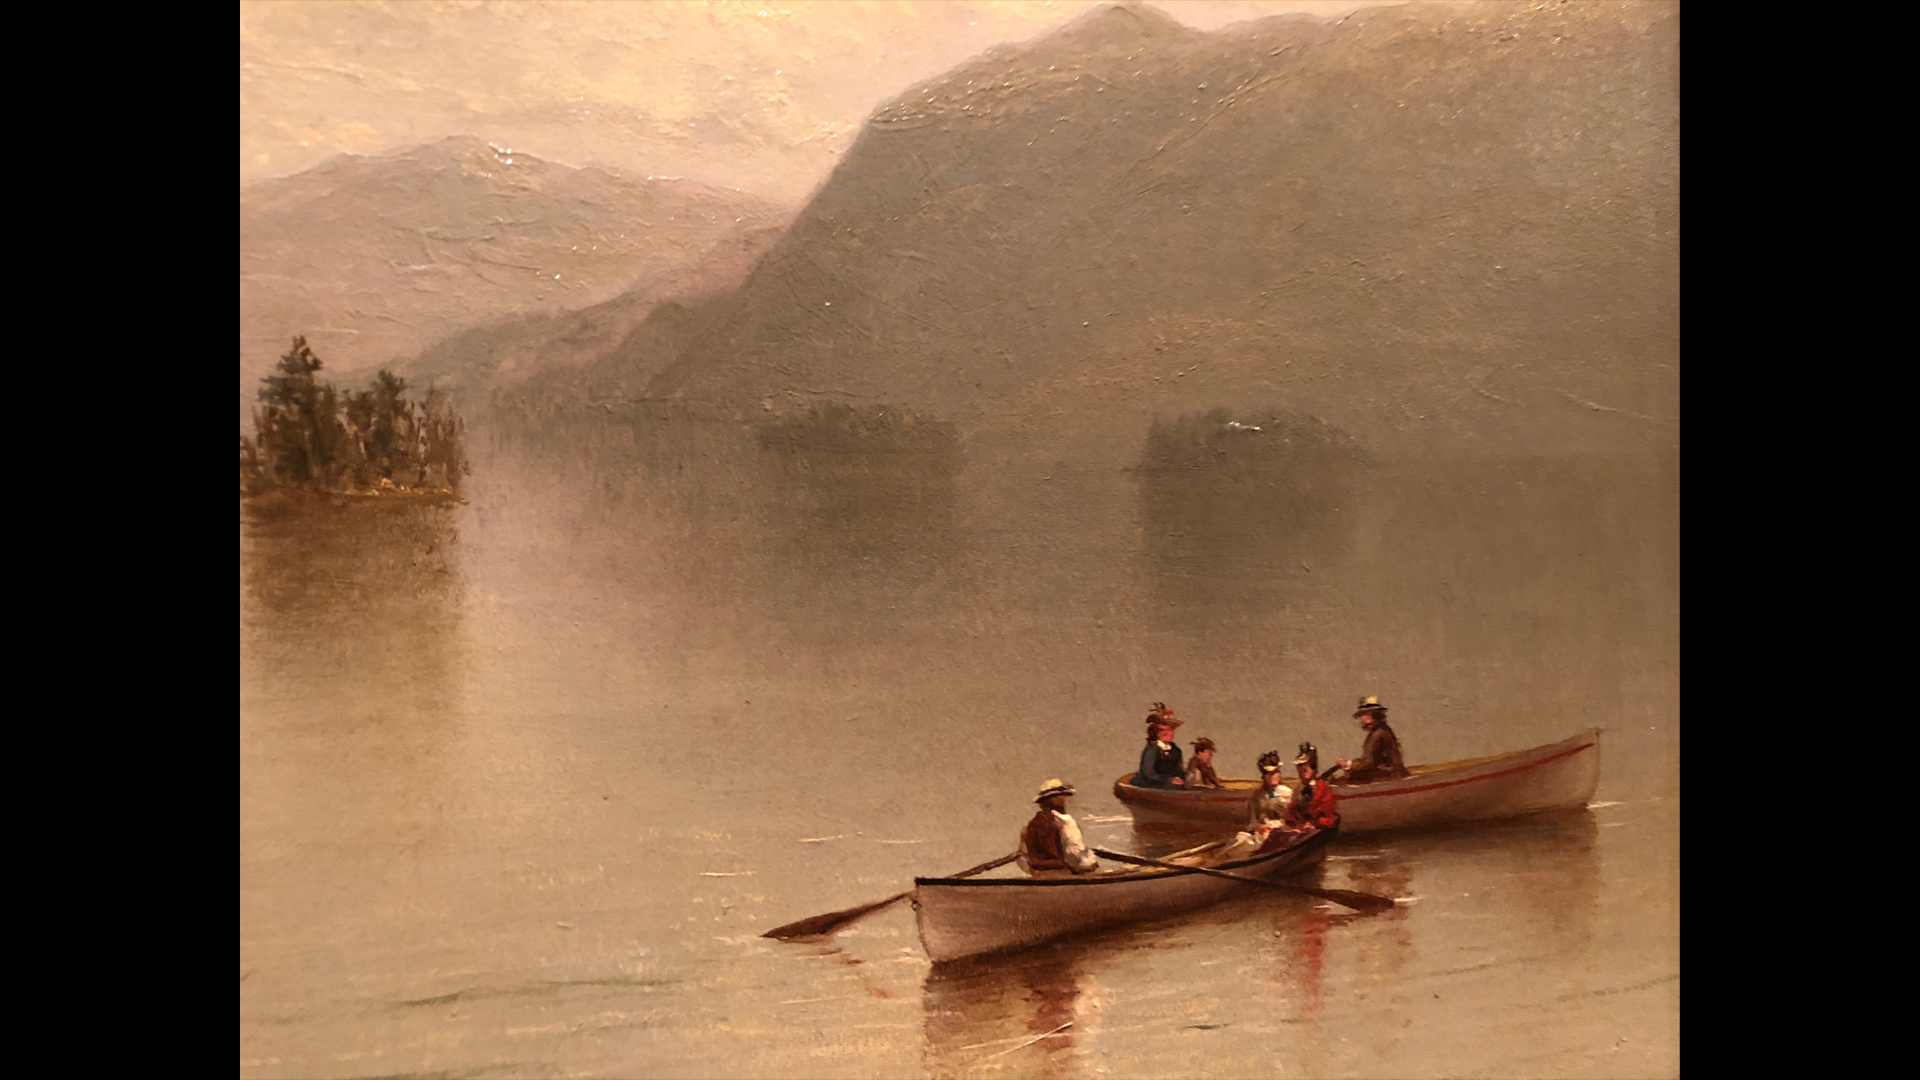 A cropped view of a painting depicting two boats out on the water in the Adirondacks.